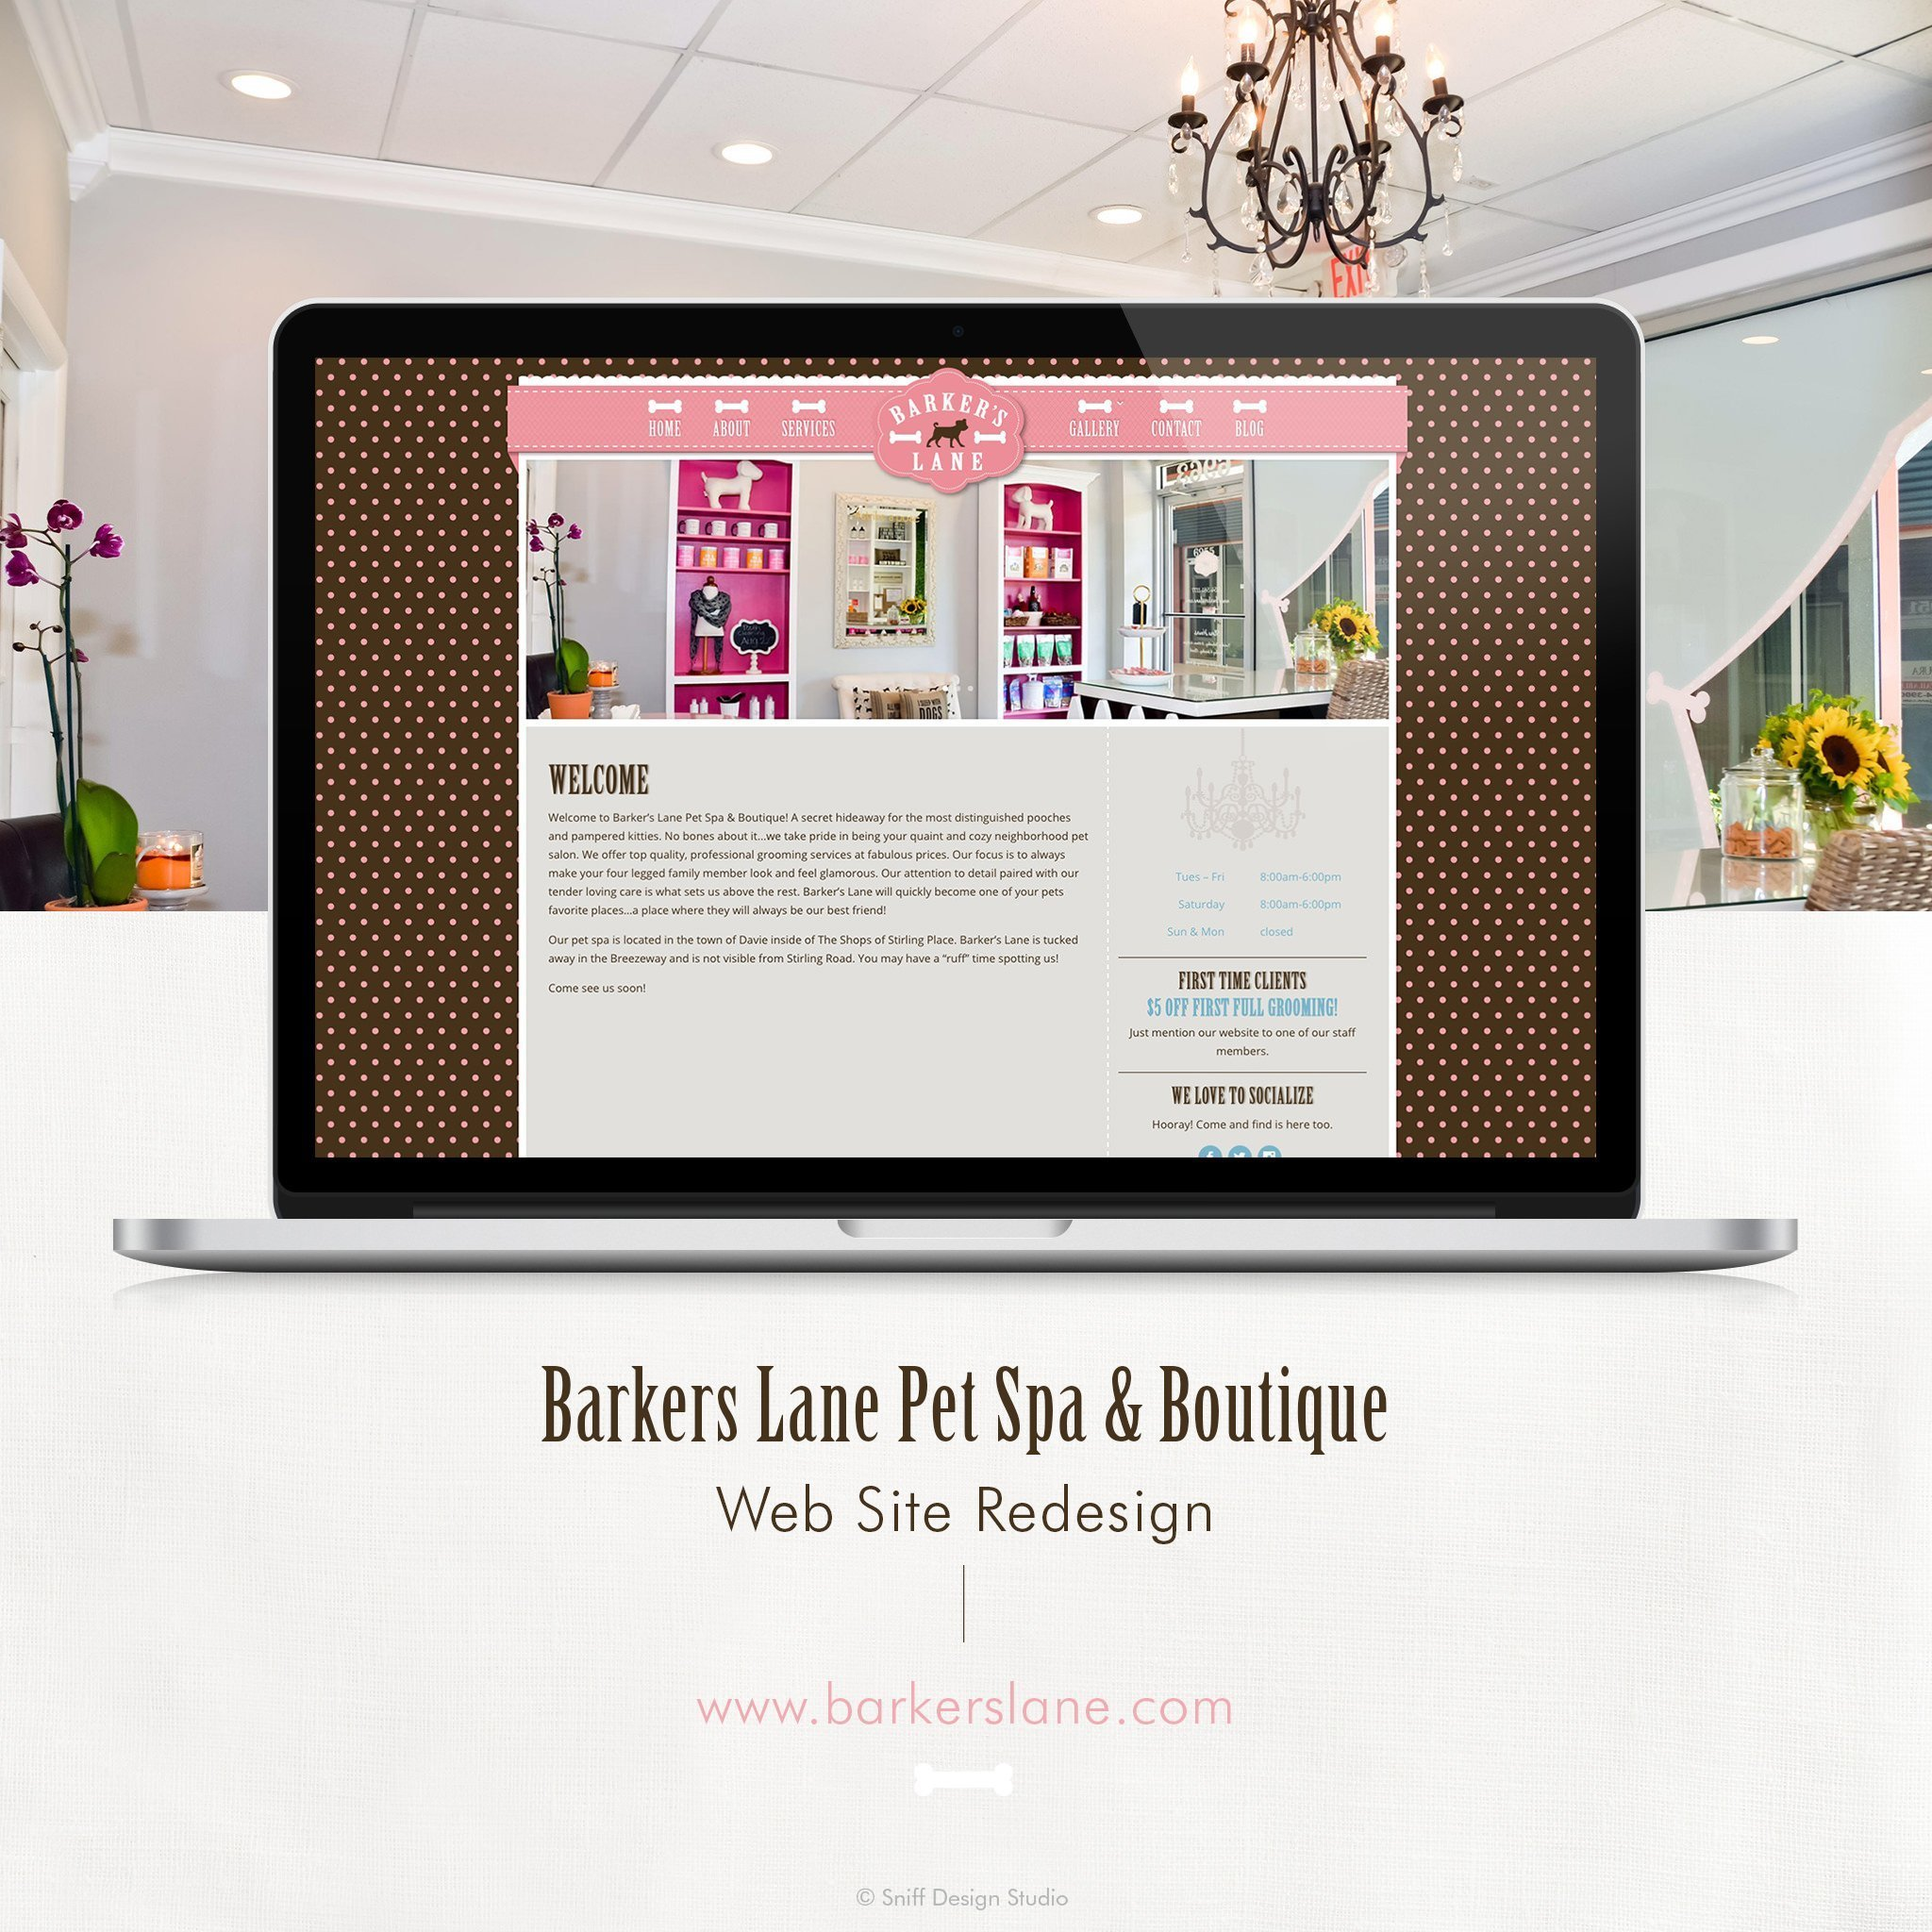 Barkers Lane New Web Site Design by Sniff Design Studio